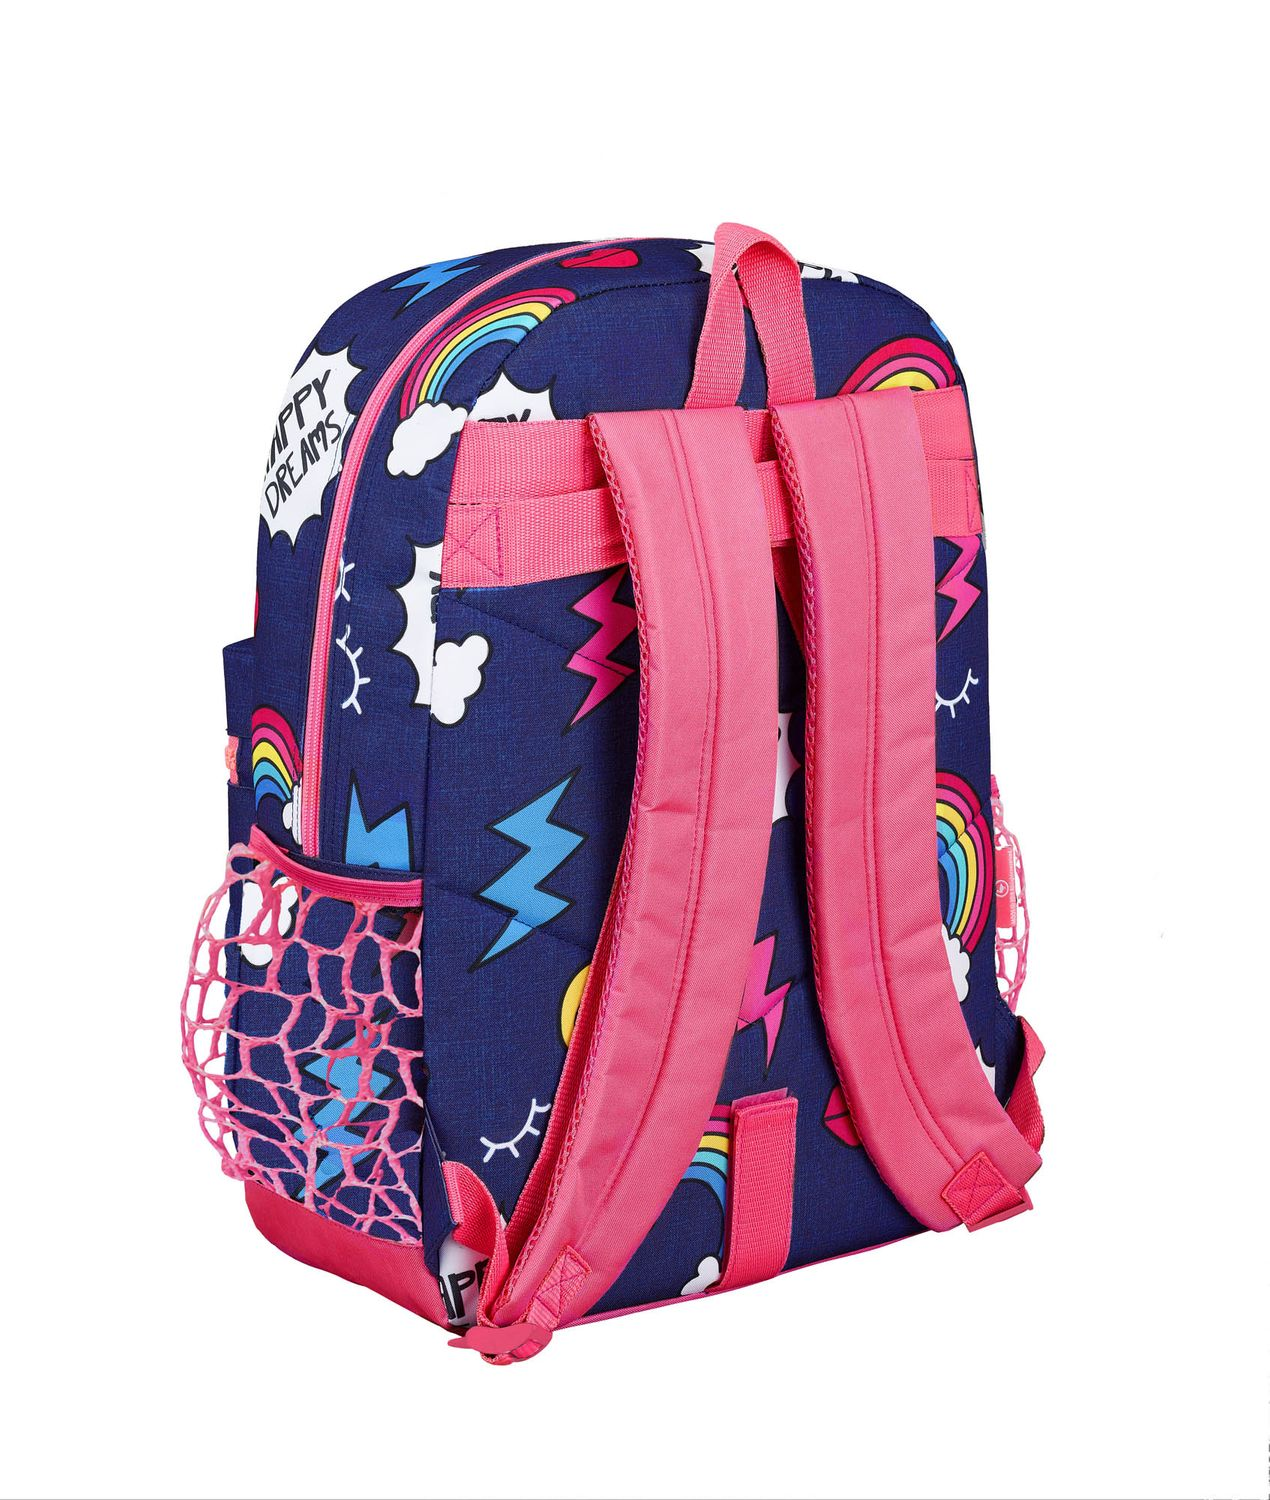 MOOS Backpack DREAMS 43cm – image 2